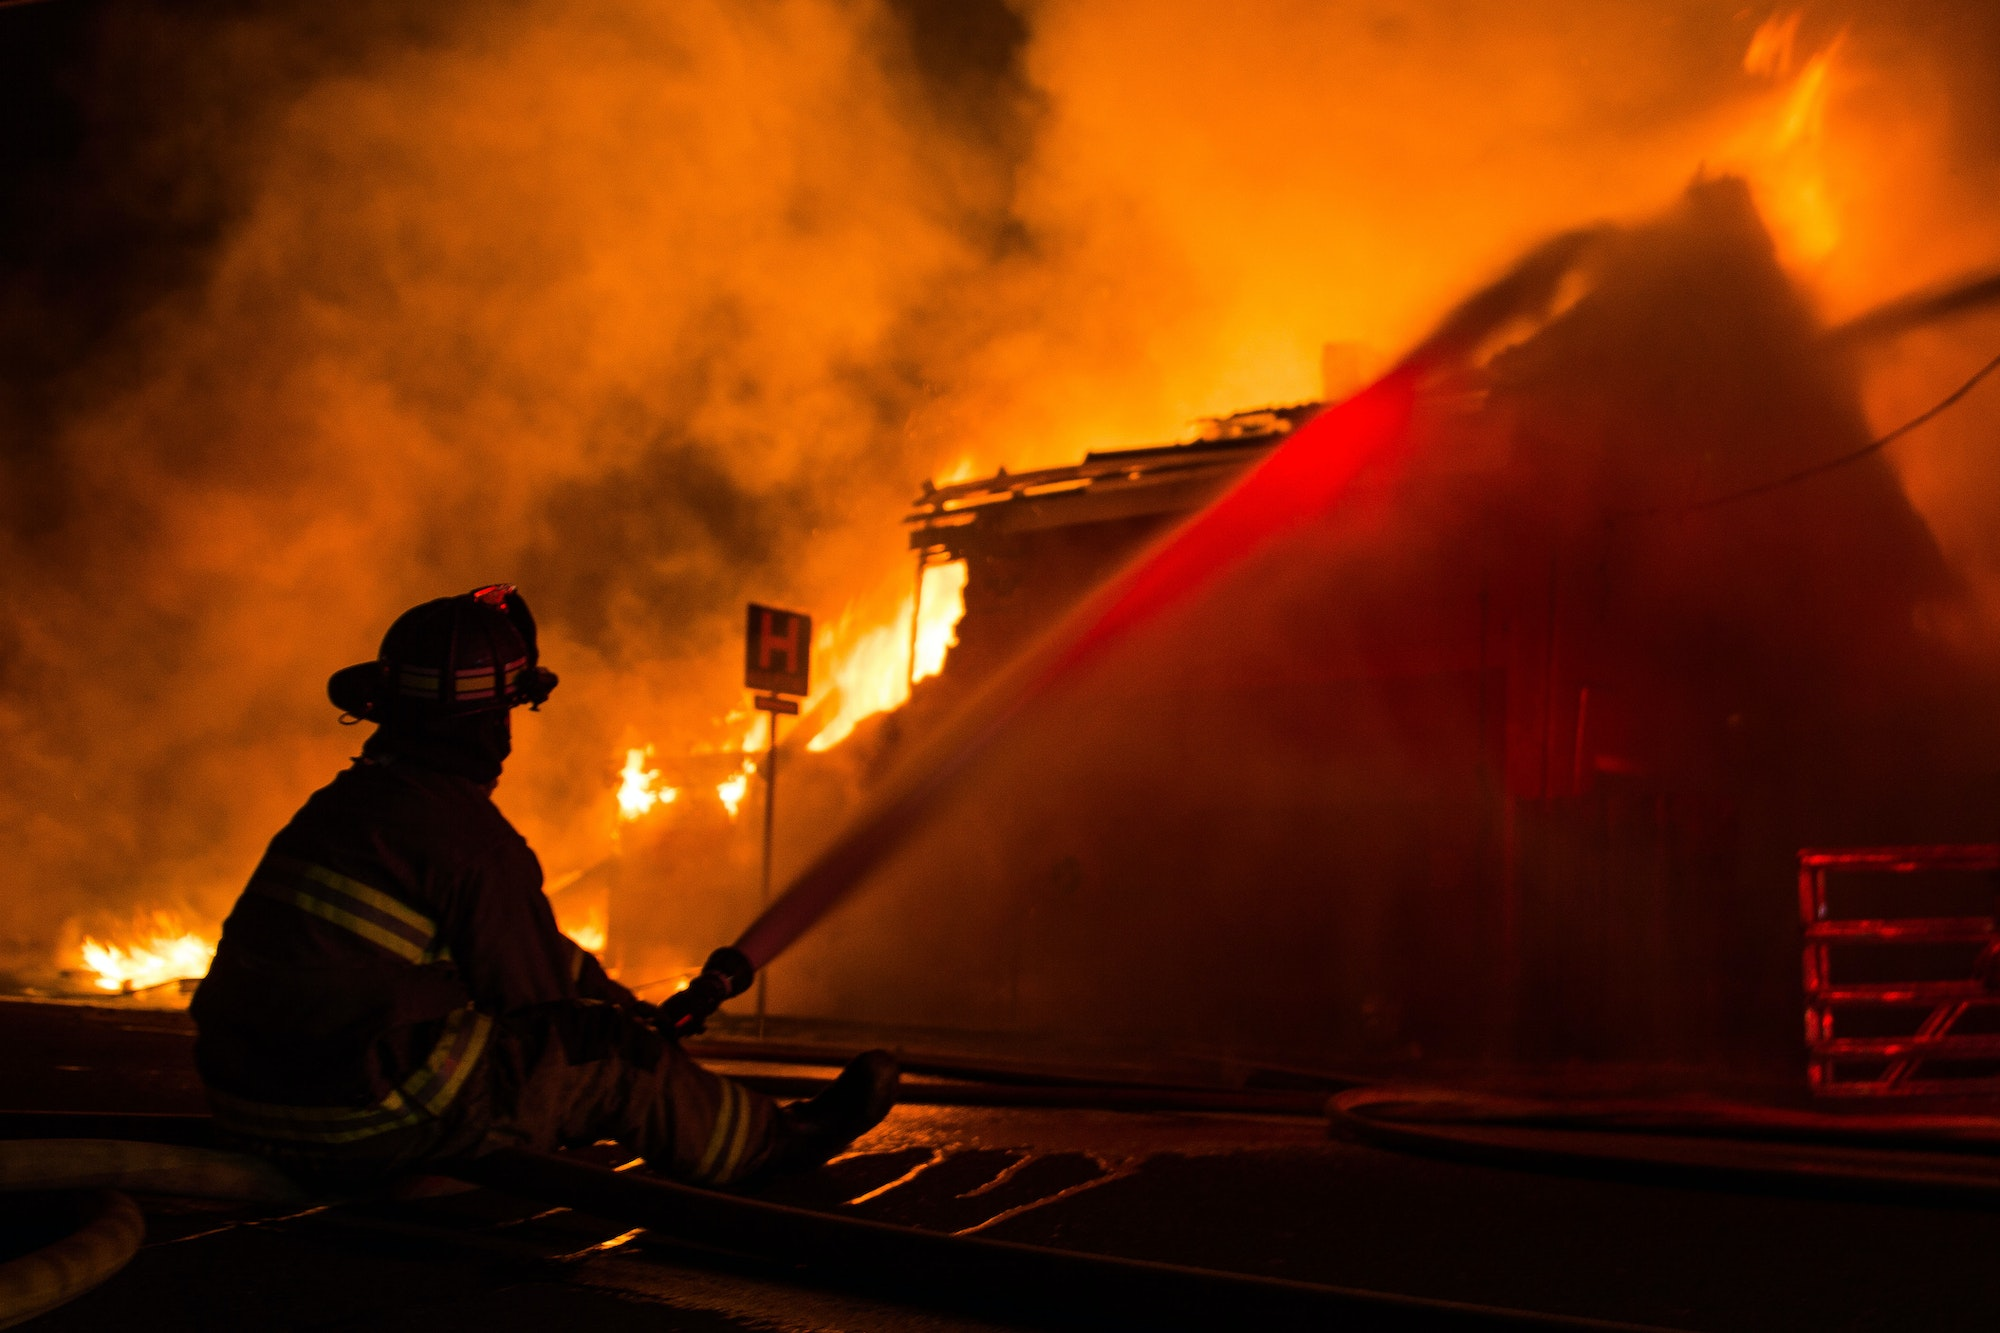 Color photo of a fire fighter directing a hose stream on a structure fire.